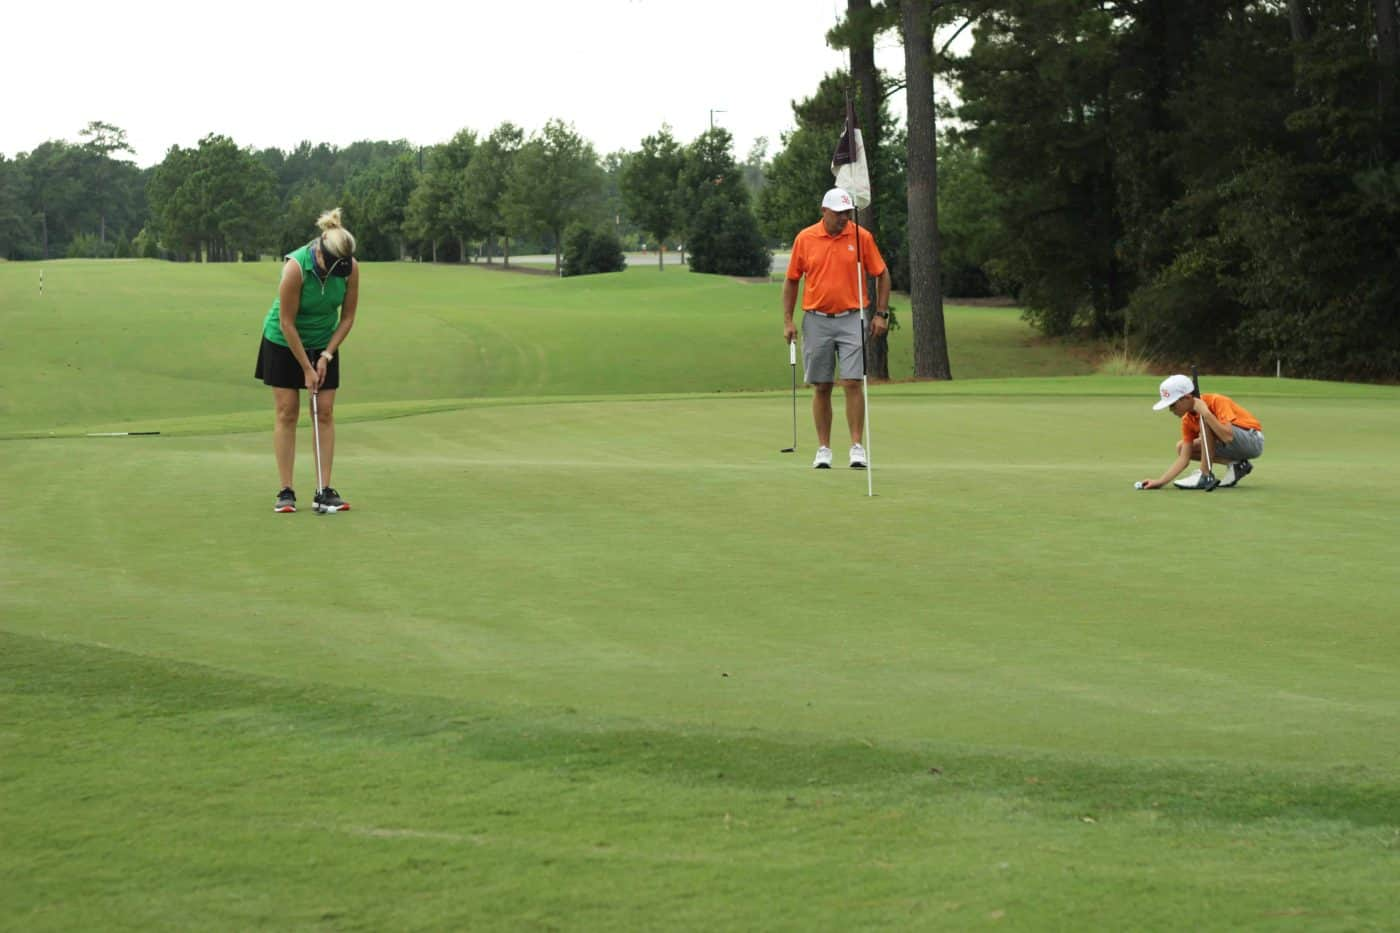 A family playing golf together